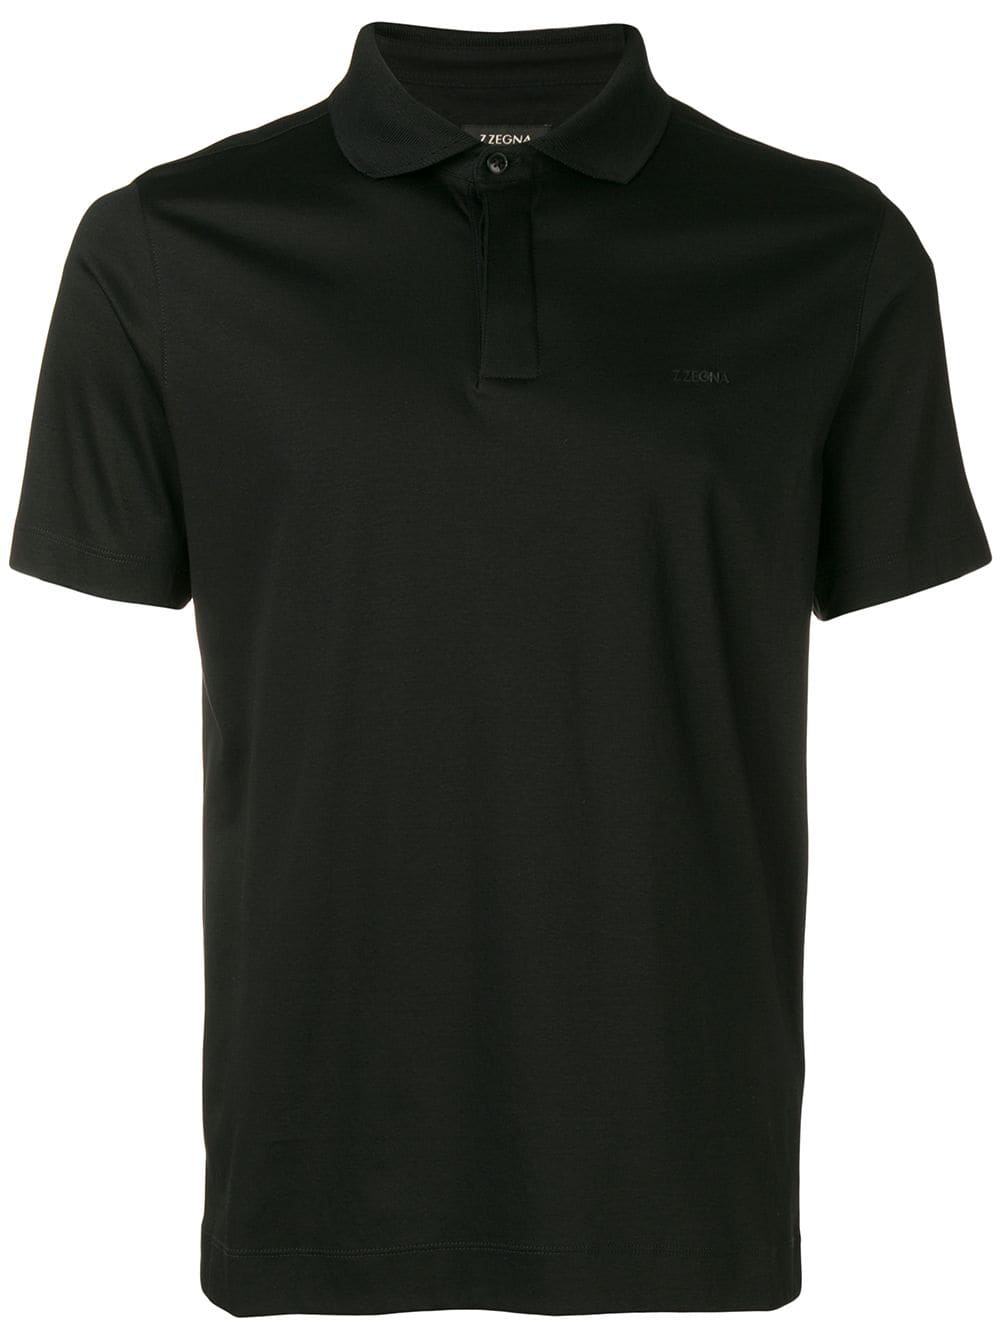 312c53793c Z Zegna regular polo shirt - Black in 2019 | Products | Polo shirt ...